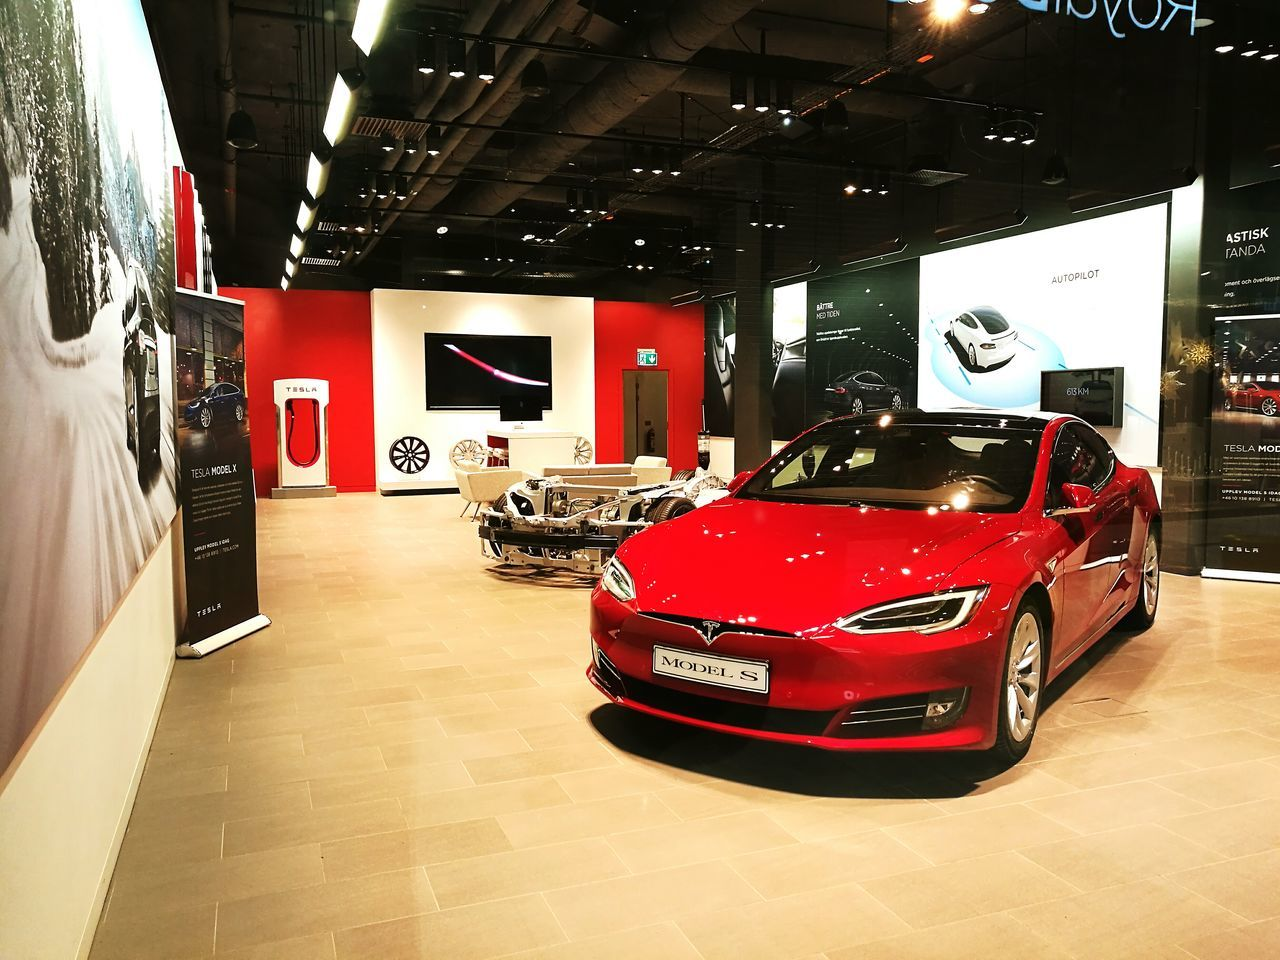 Tesla Model S Tesla Model S Tesla Car Luxury No People Modern Stockholm City Stockholm Stockholm, Sweden Mall Of Scandinavia Mall Of Scandinavia стокгольм HuaweiP9plus Huawei P9 Plus Huawei Leica Huawei P9 Leica HuaweiP9Photography Huaweiphotography Huawei P9. Huaweip9photos HuaweiP9 Huawei Shots Huawei Leica Lens Indoors